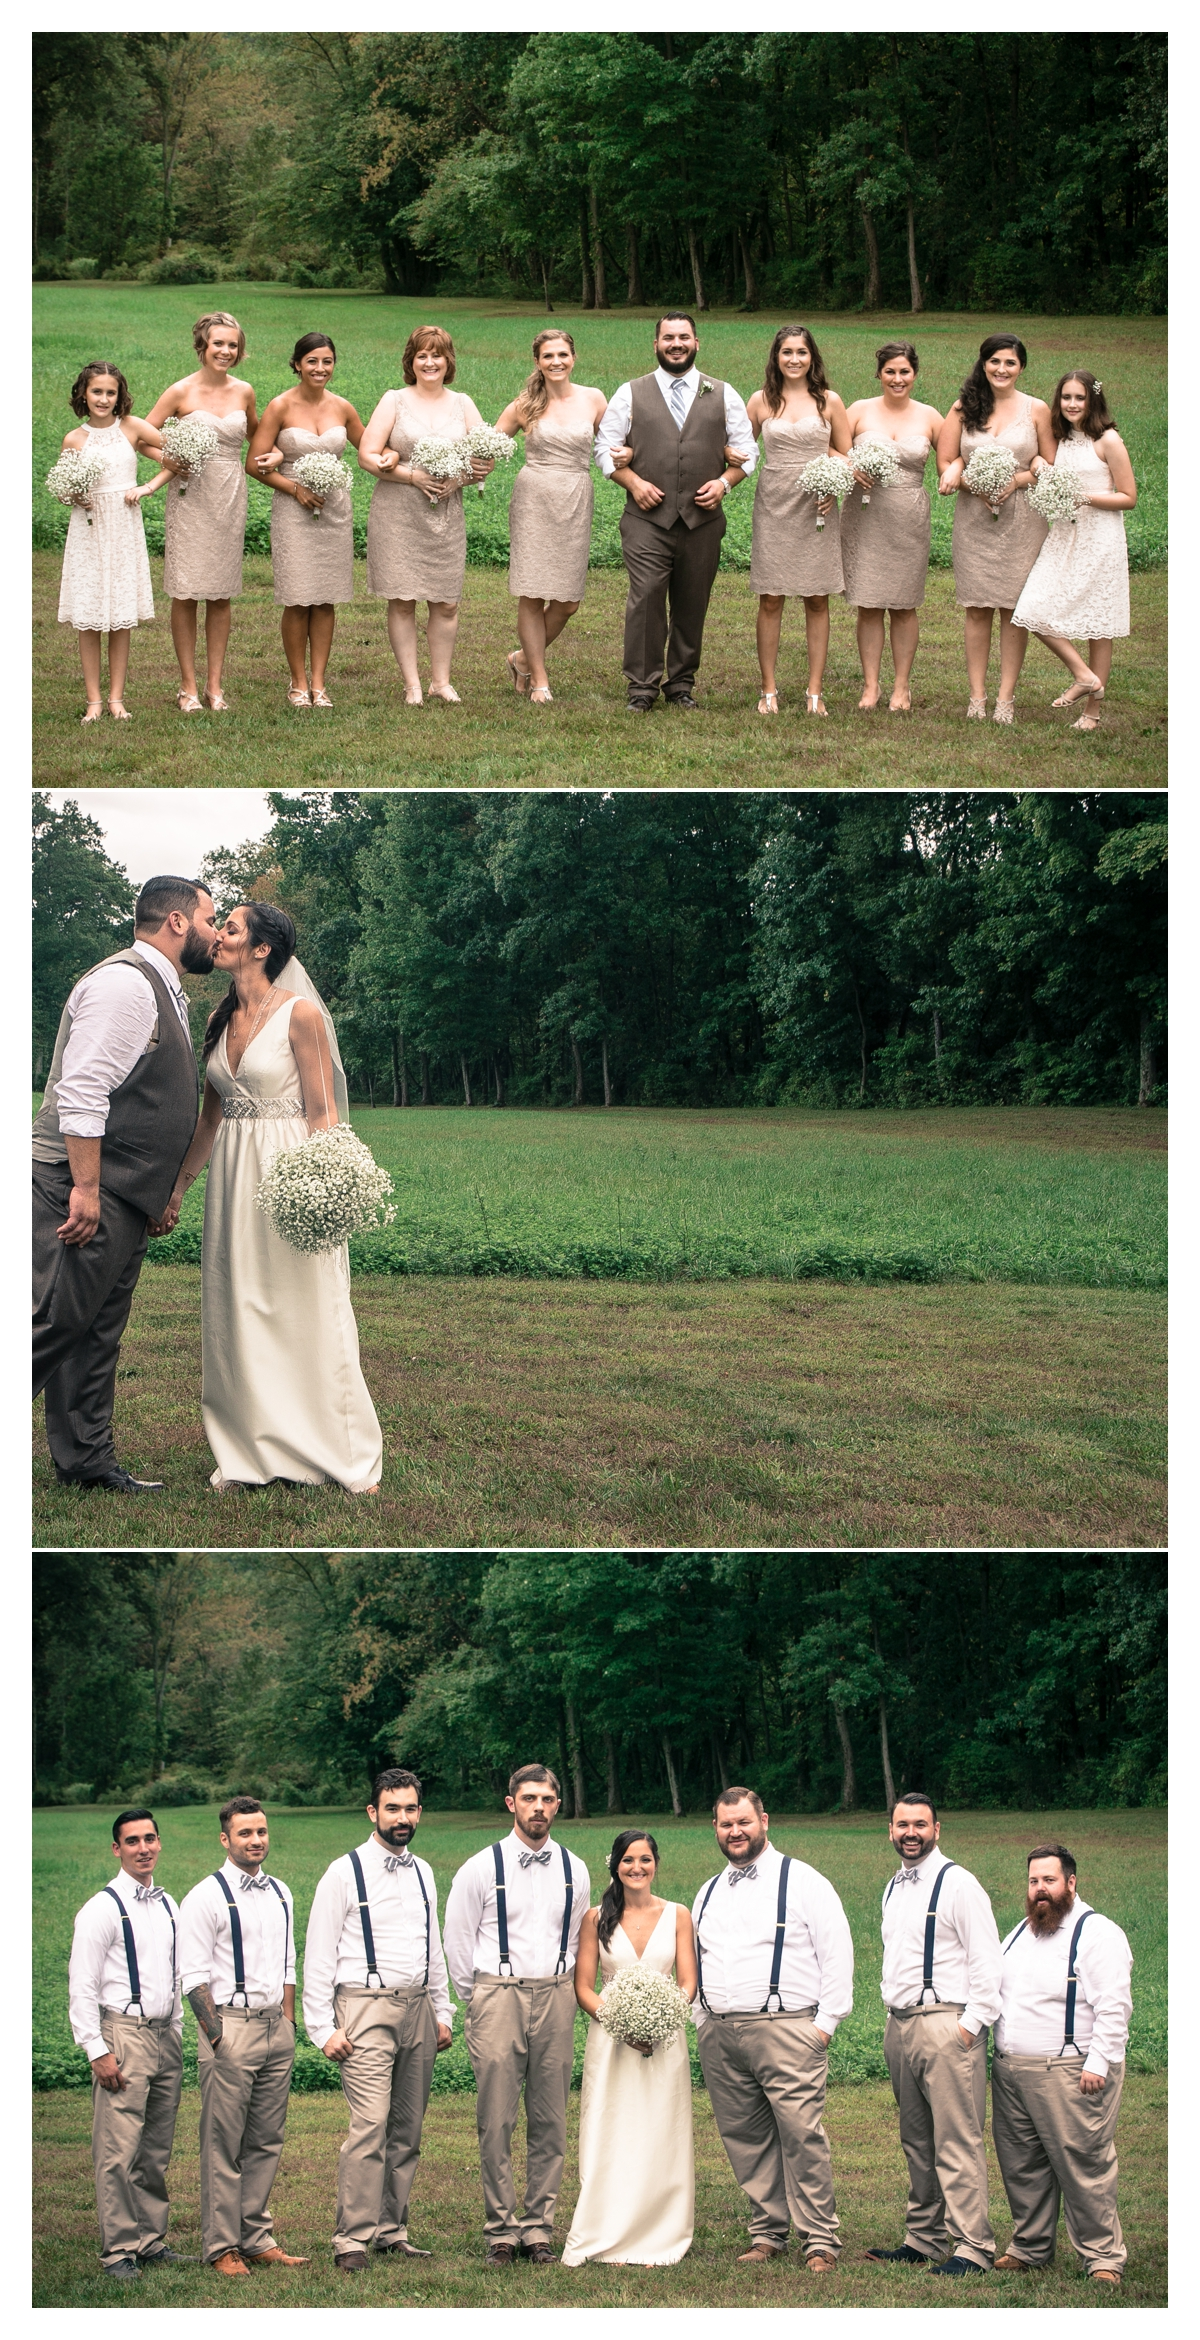 Bridal party photos in open feild